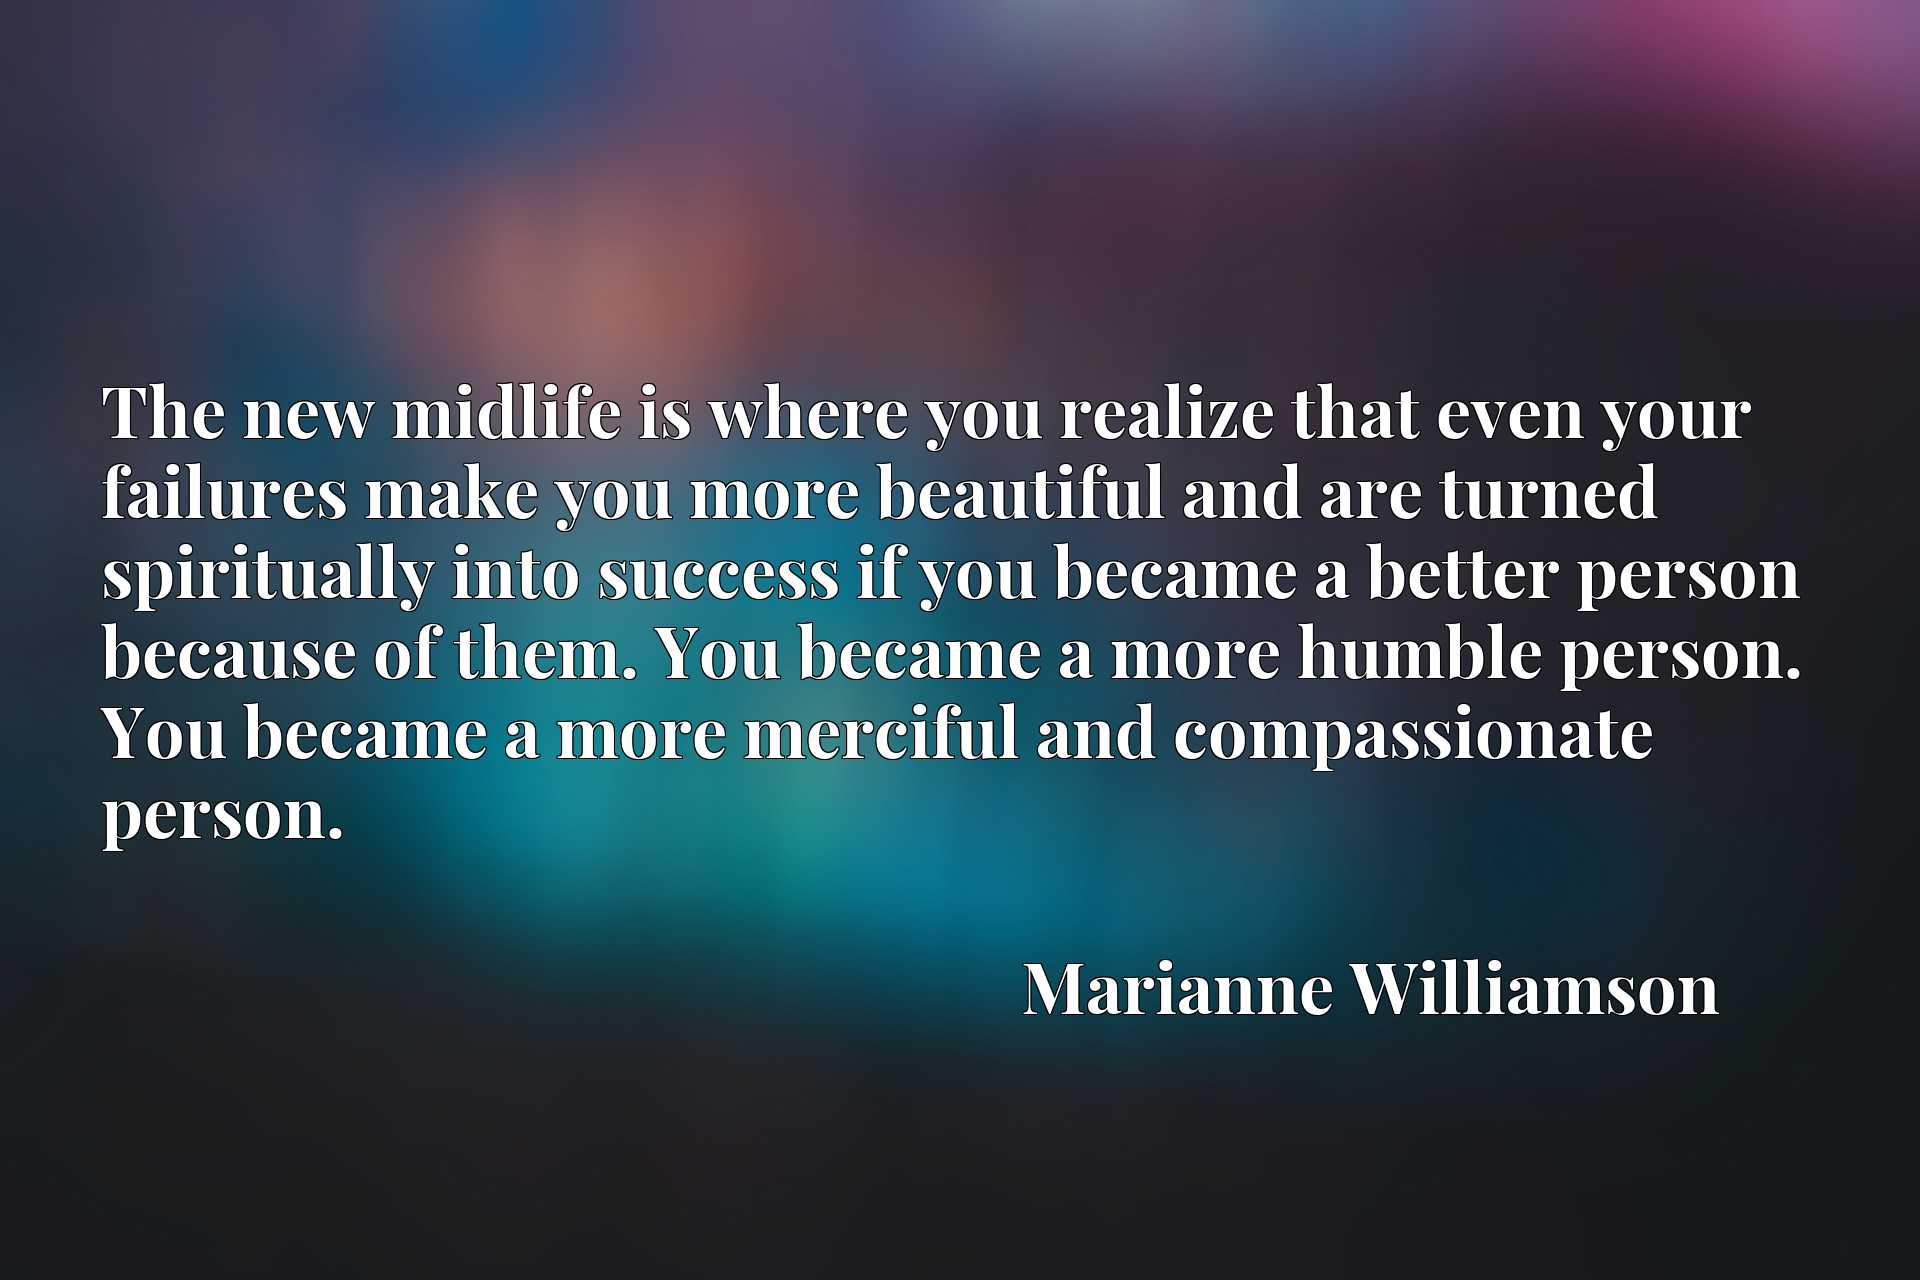 The new midlife is where you realize that even your failures make you more beautiful and are turned spiritually into success if you became a better person because of them. You became a more humble person. You became a more merciful and compassionate person.